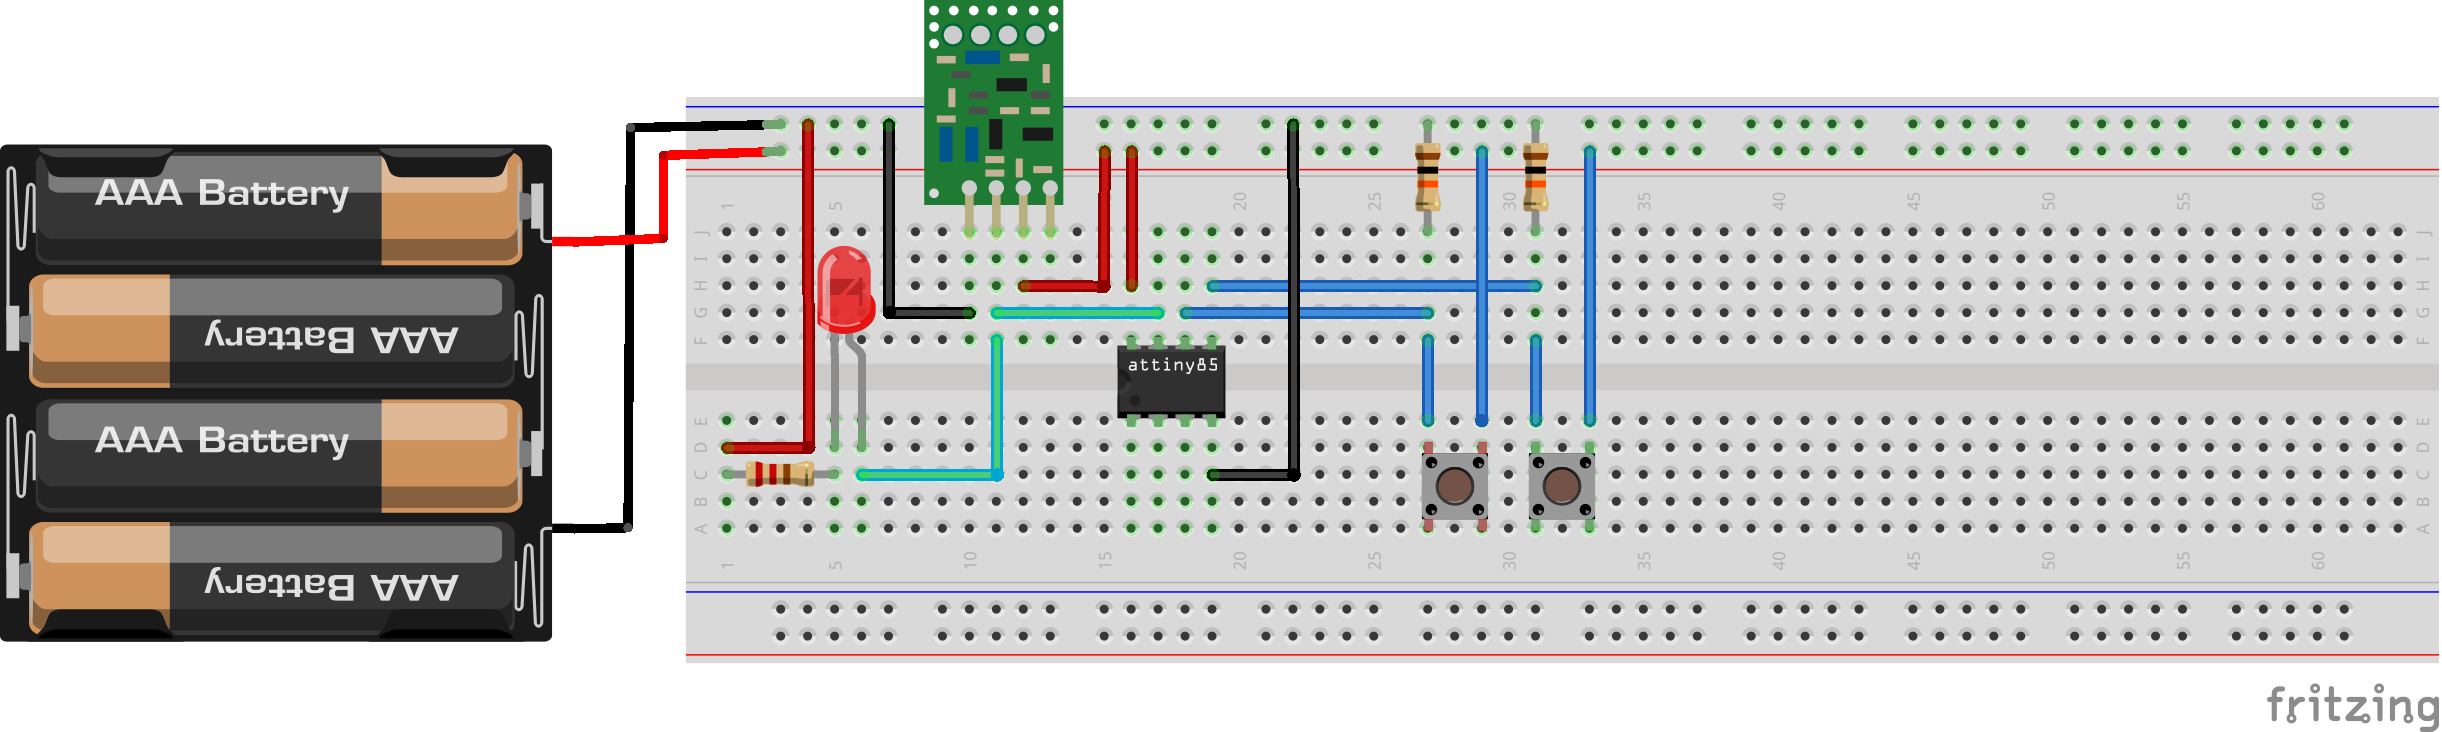 Rtc Ds 1307 Arduino besides SpotMistakesP11 moreover 4w 12v Fluorescent L  Driver Circuit Using Ic555 also Wireless Power Transfer as well Attiny 433mhz Sender. on battery circuit diagram